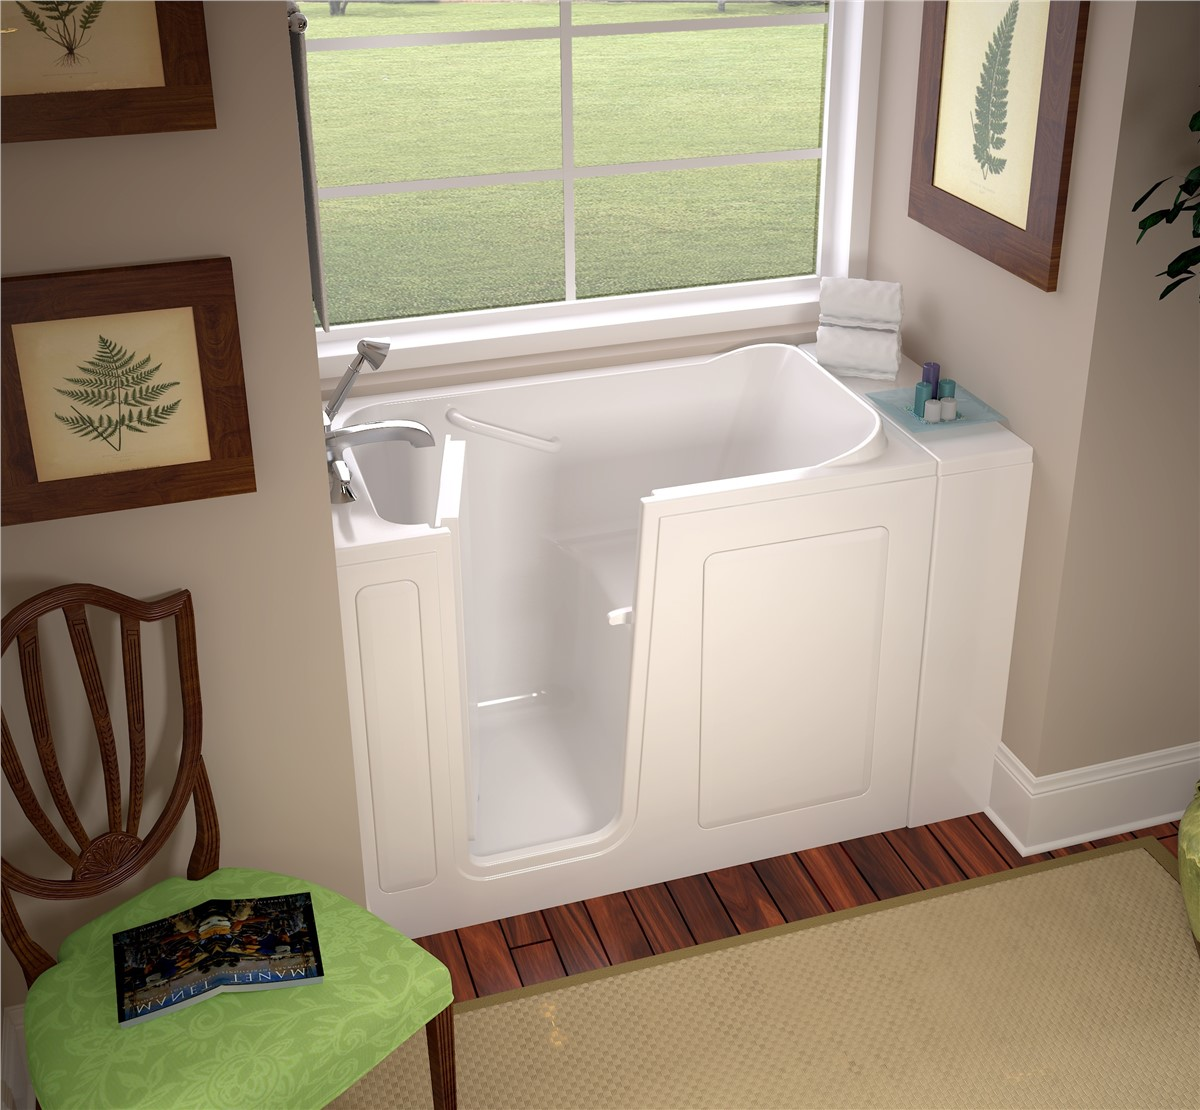 South Florida Walk-In Tubs | Handicap Tubs South Florida |Bathrooms Plus